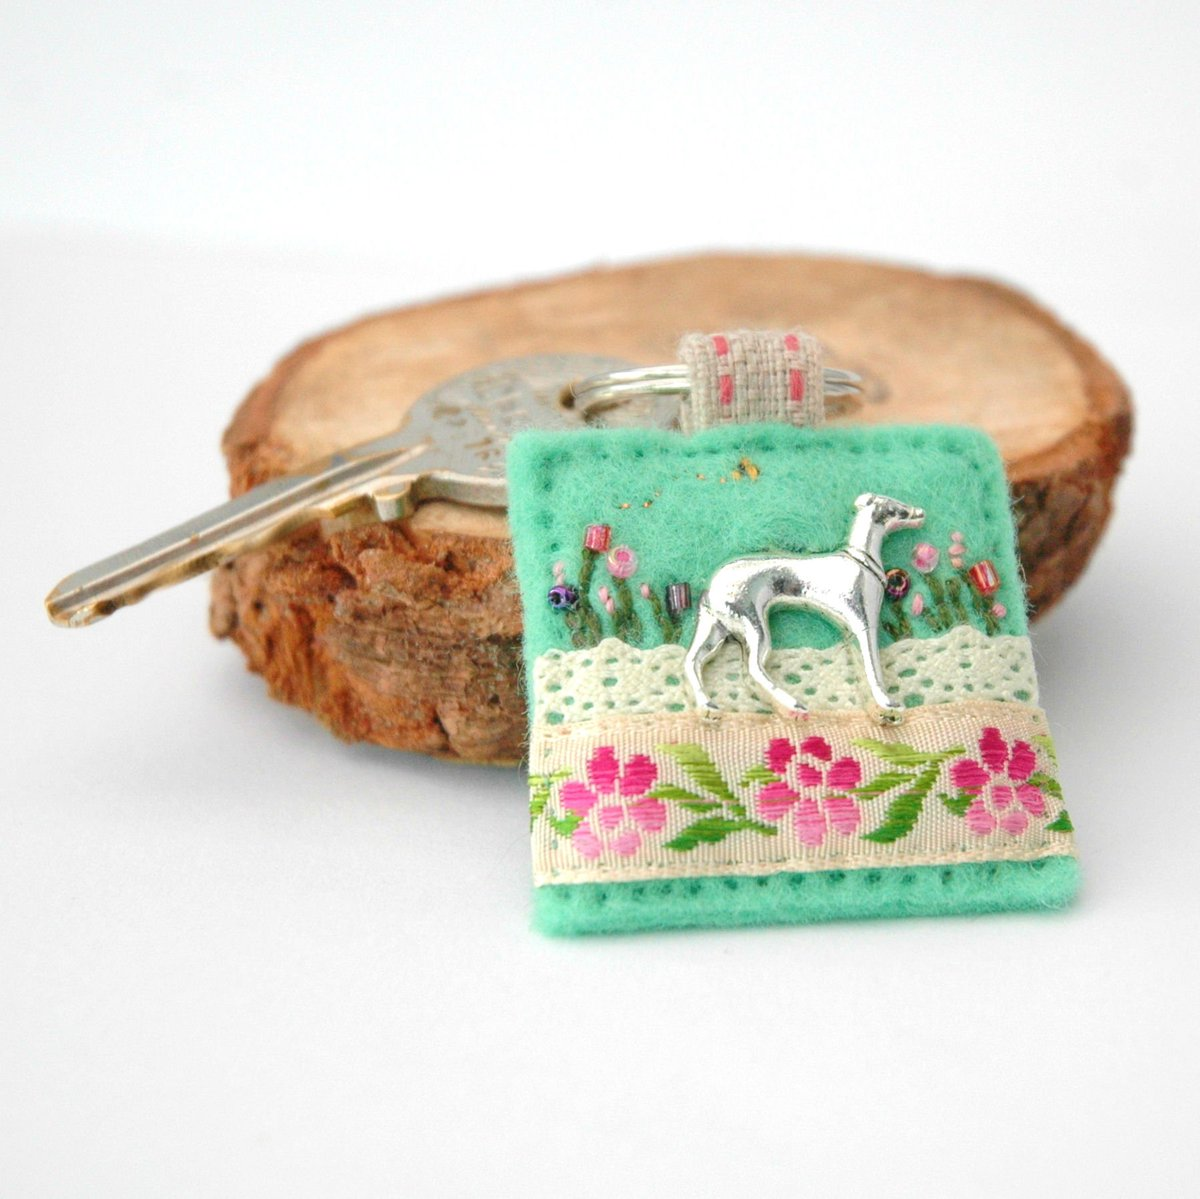 Greyhound keyring in spring green - unique hand sewn #accessories in decorative #felt by Ellie's Treasures.     https:// etsy.me/2X3EDiW        #EarlyBiz #lincsconnect #handmade #giftideas #greyhounds <br>http://pic.twitter.com/DEkPZJscM0